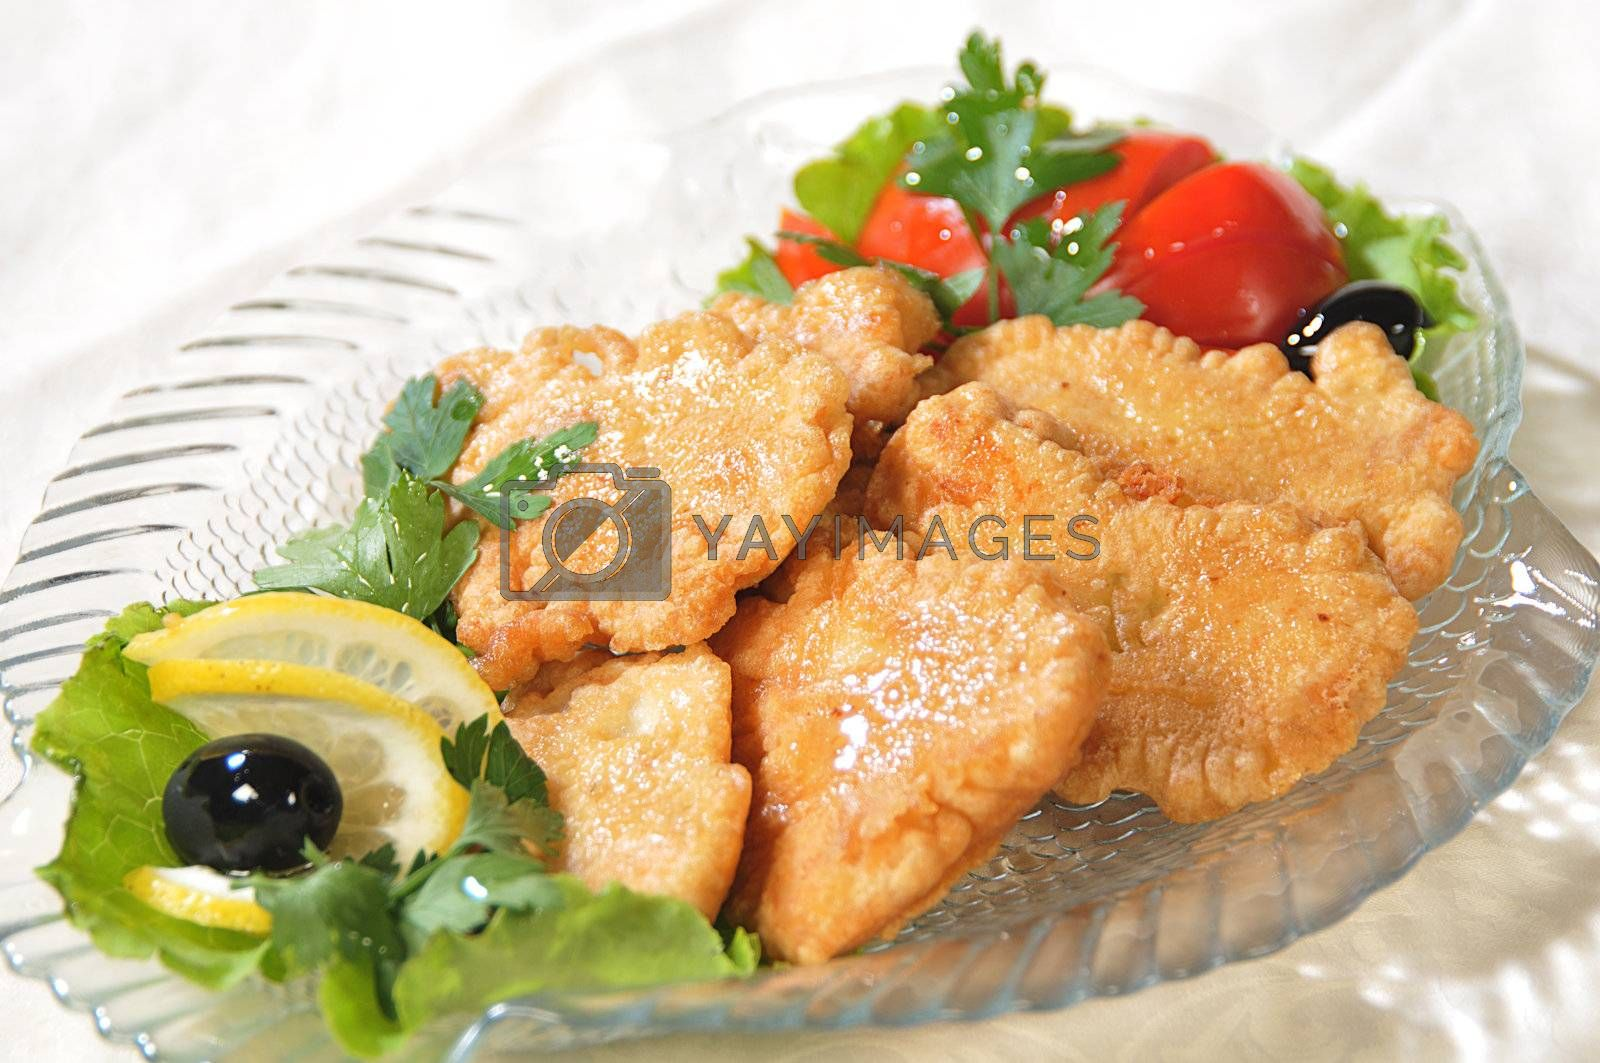 Pieces of fish filet are fried in an egg and decorated a tomato, greenery and olives